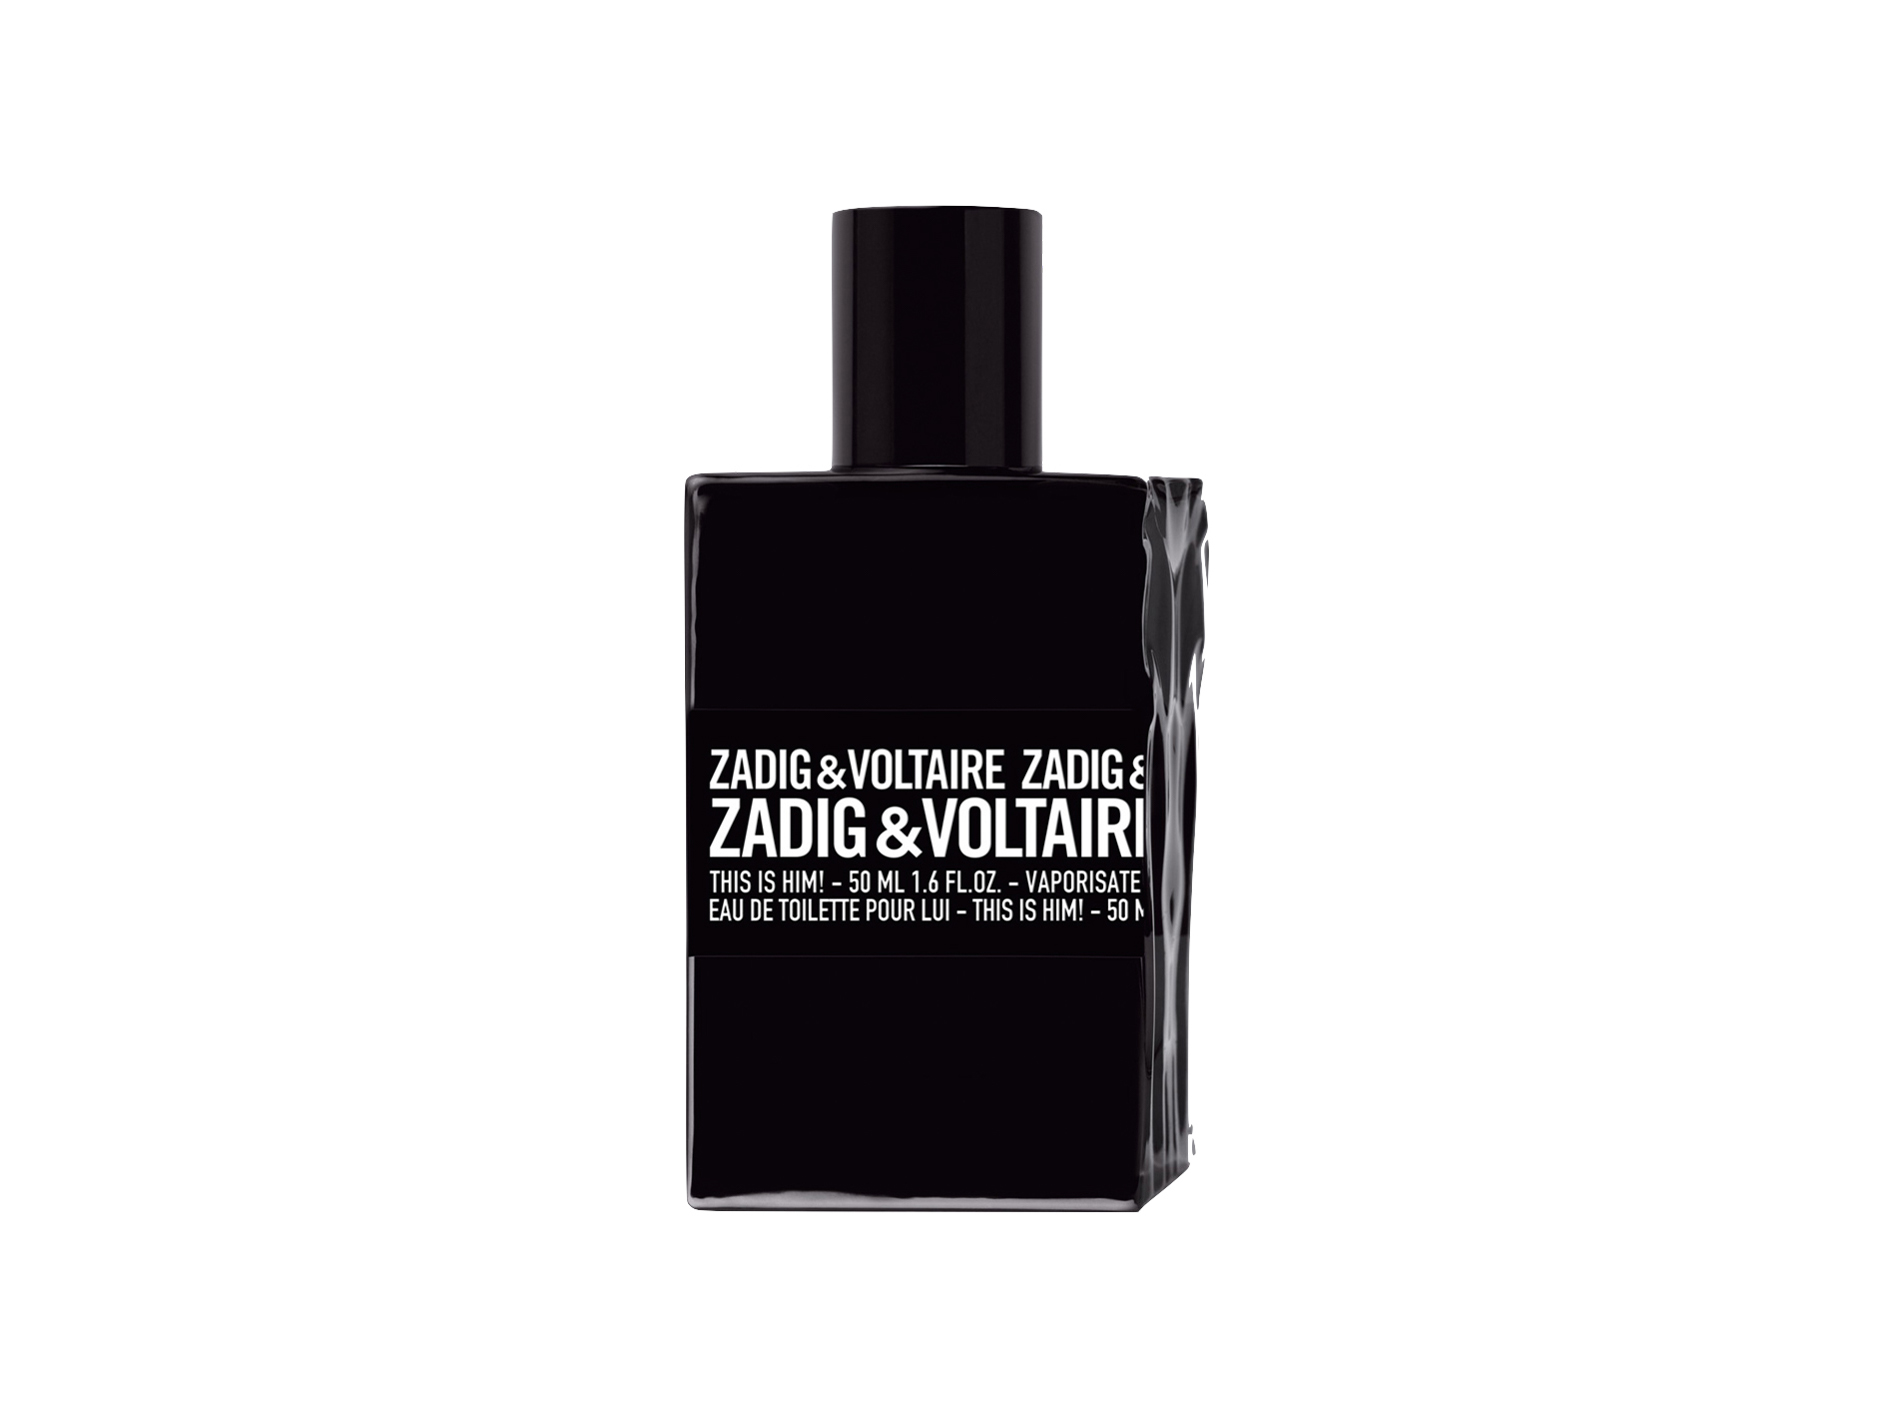 Zadig & Voltaire This is his perfume